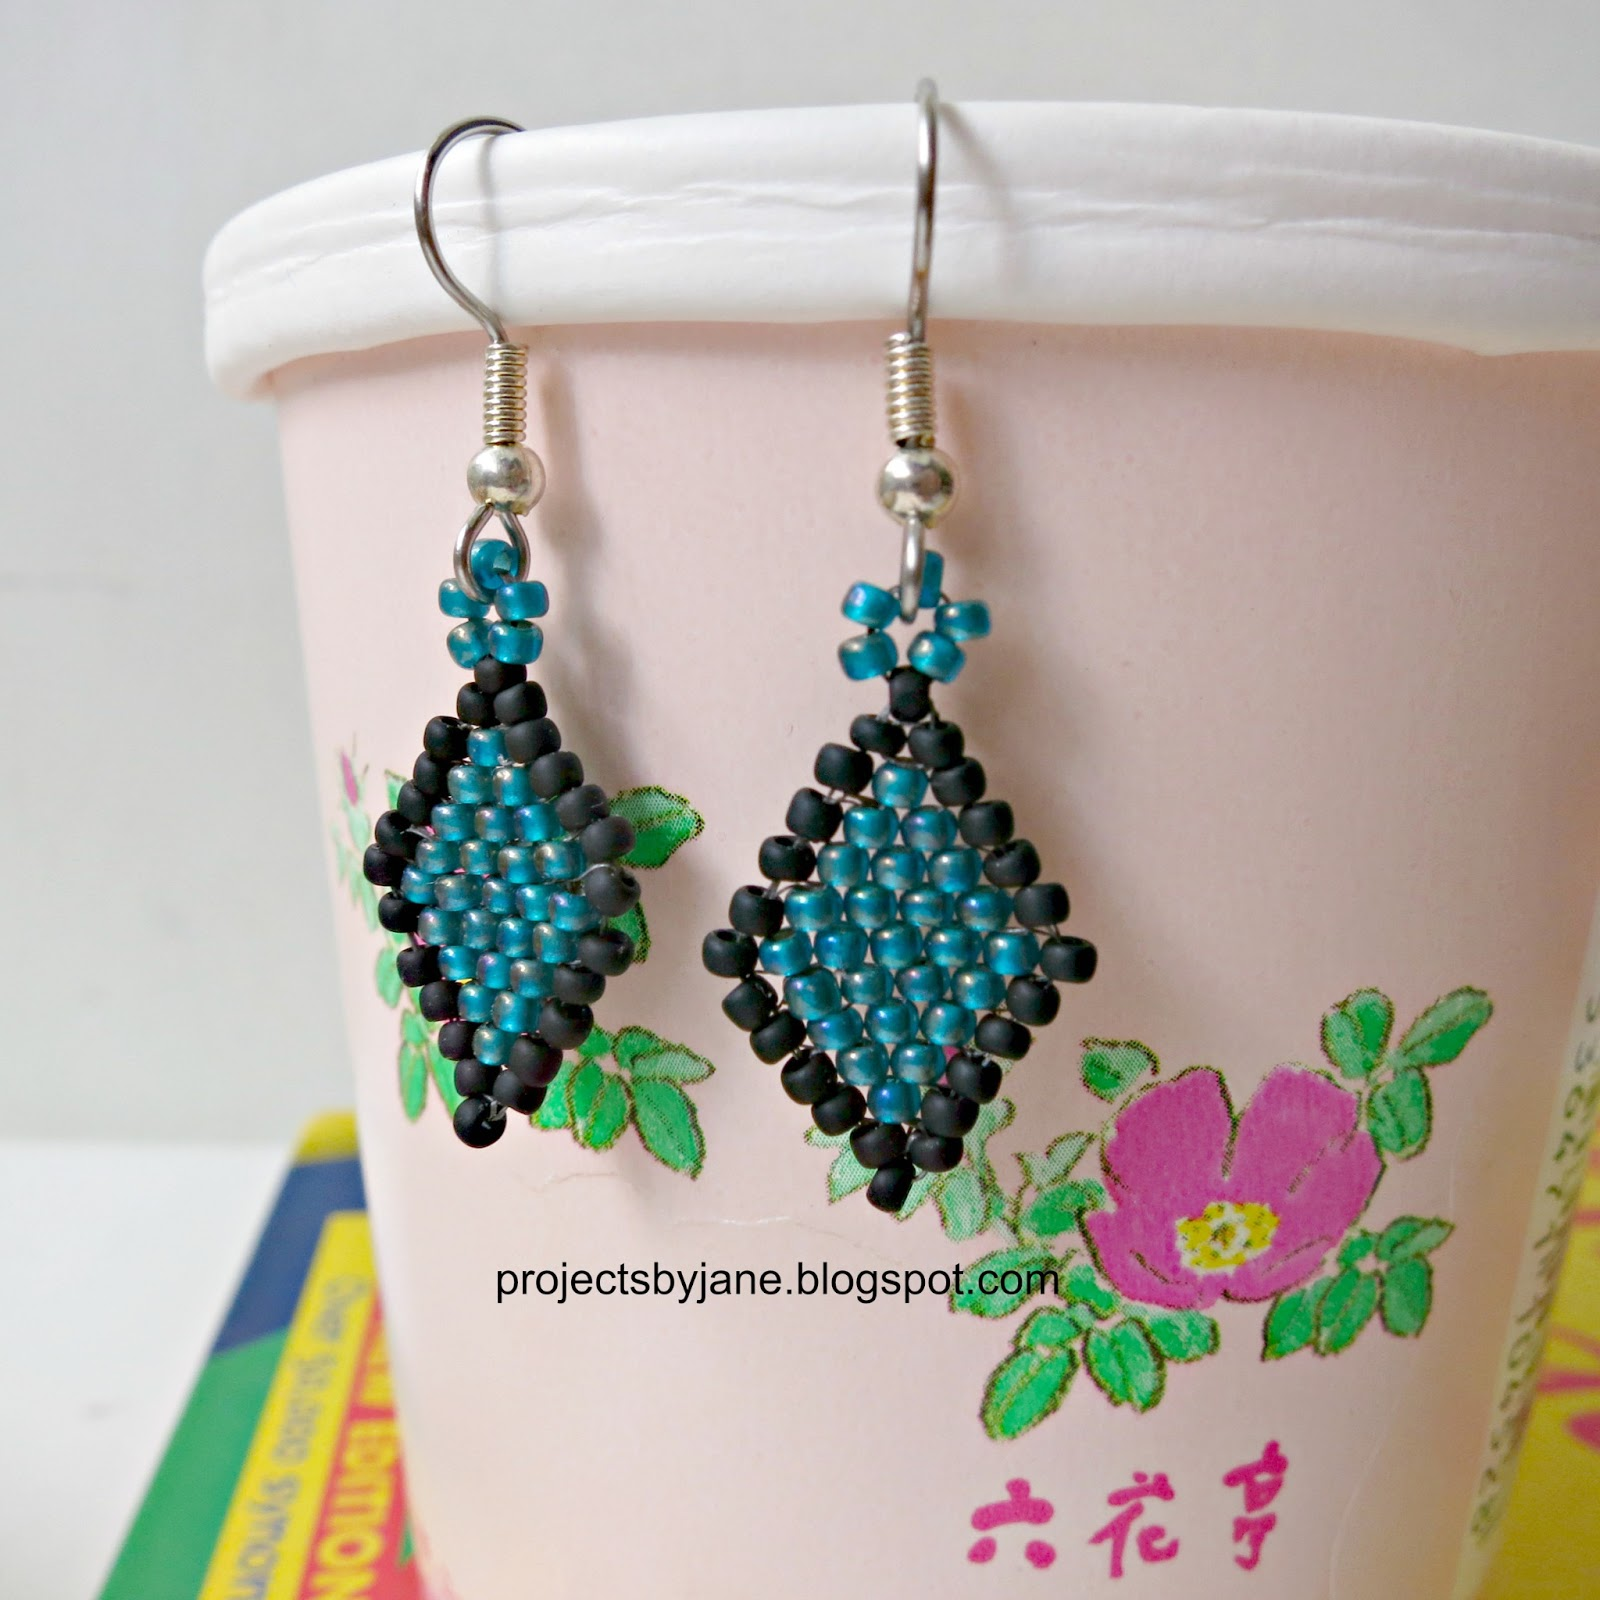 Brick Stitch Earrings in Beading http://projectsbyjane.blogspot.com/2013/03/how-old-were-you-when-you-had-your-ears.html